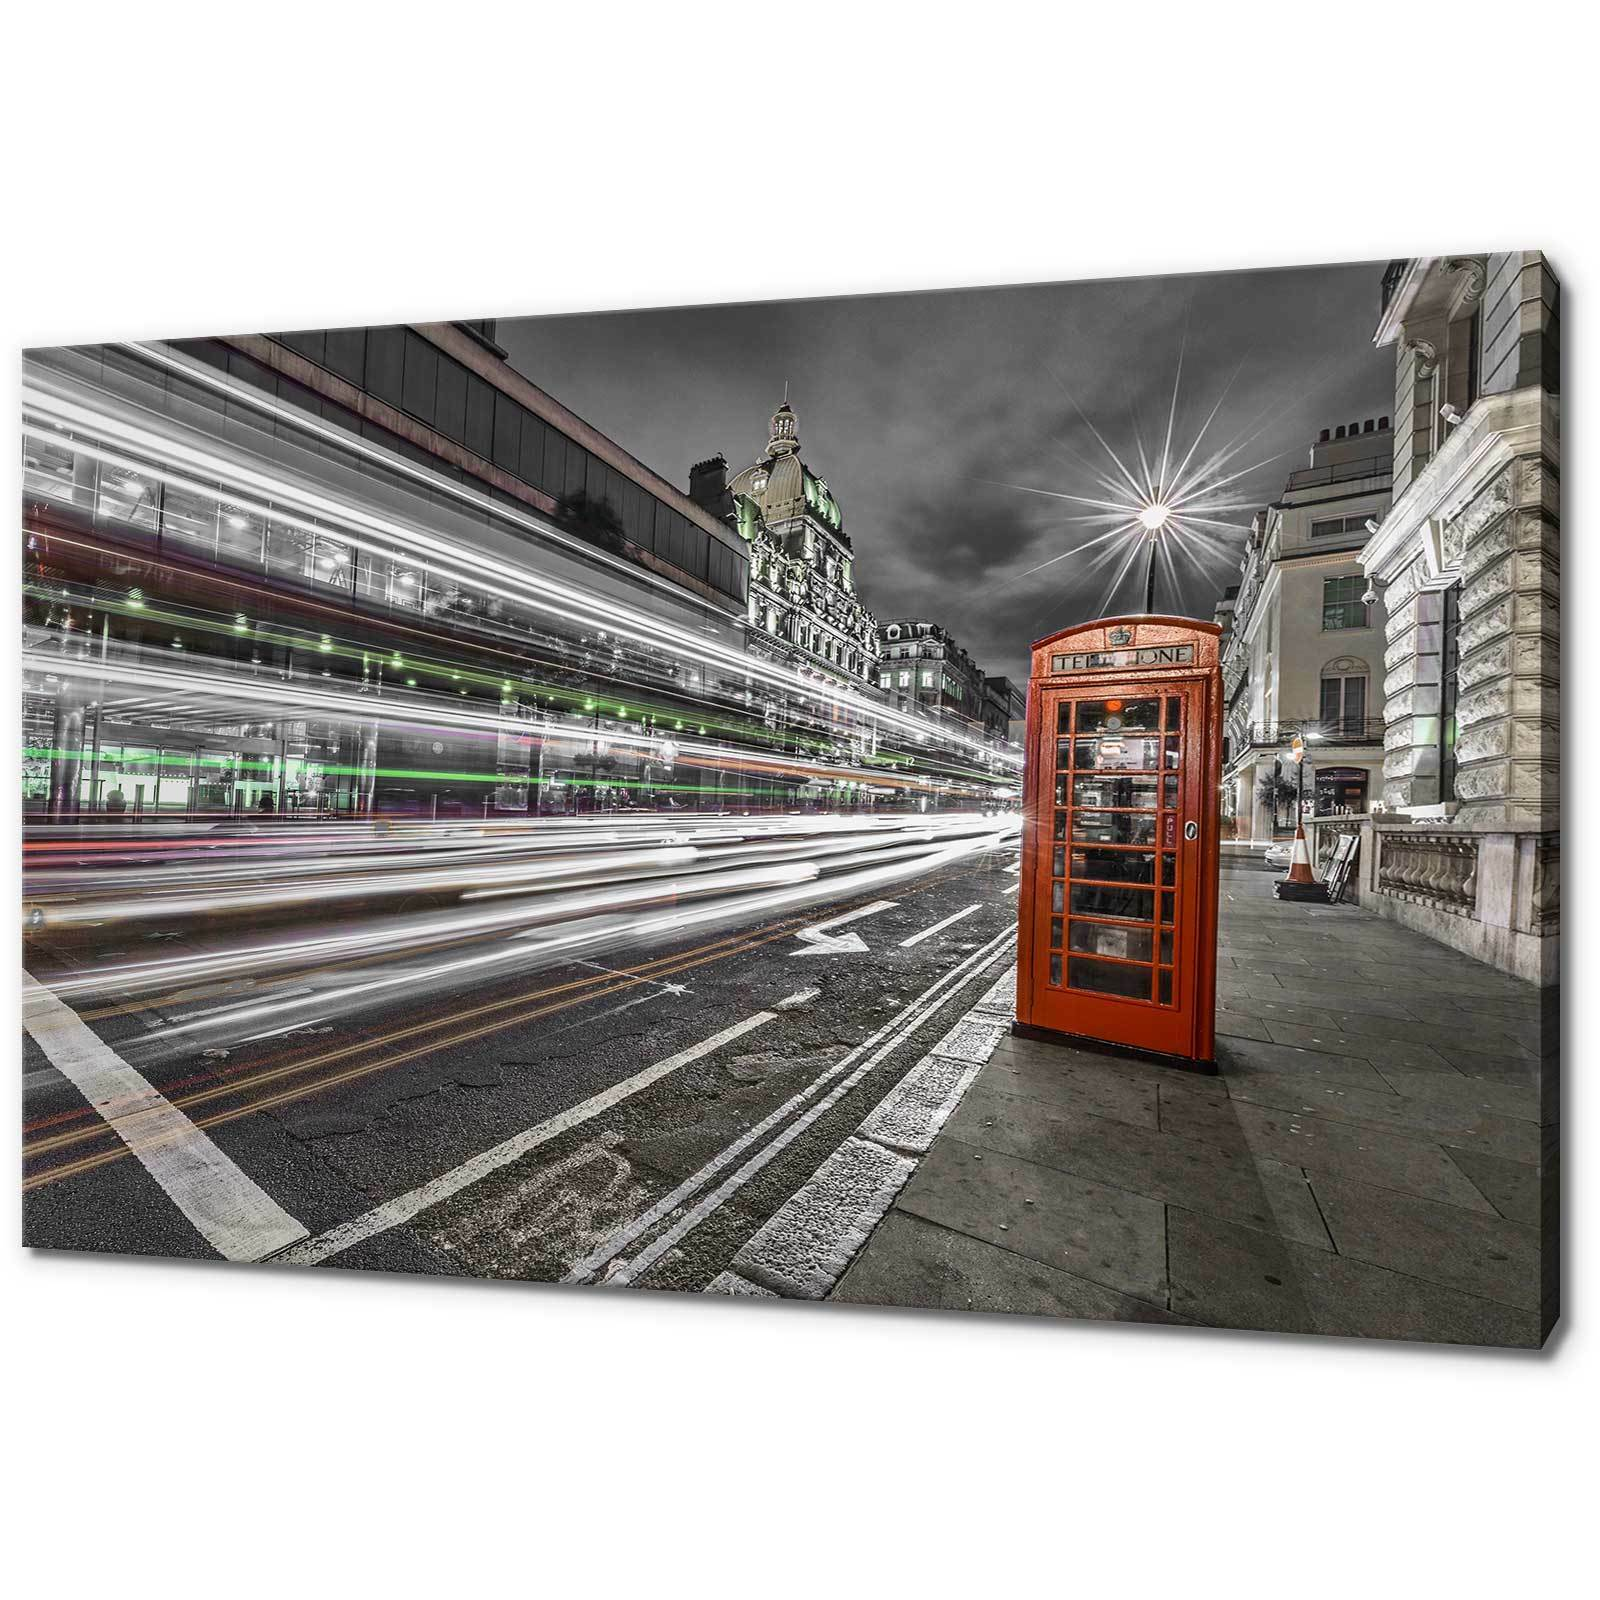 LONDON rot StiefelH MOVING LIGHTS CANVAS PRINT PICTURE WALL ART FREE FAST DELIVERY